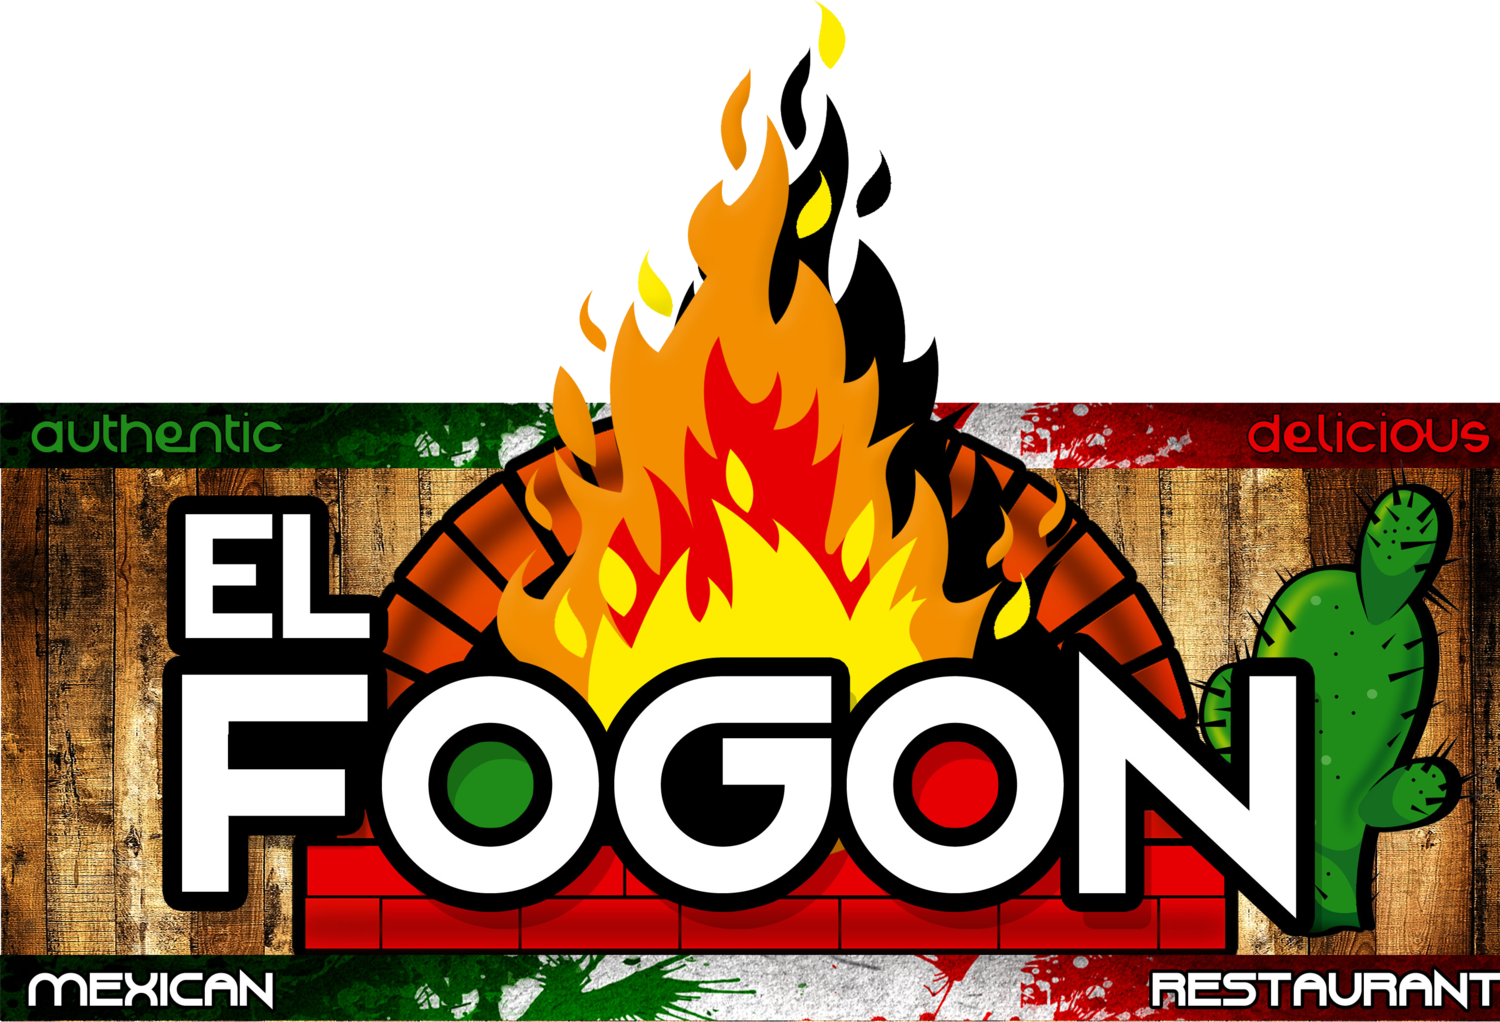 El Fogon Mexican Restaurant